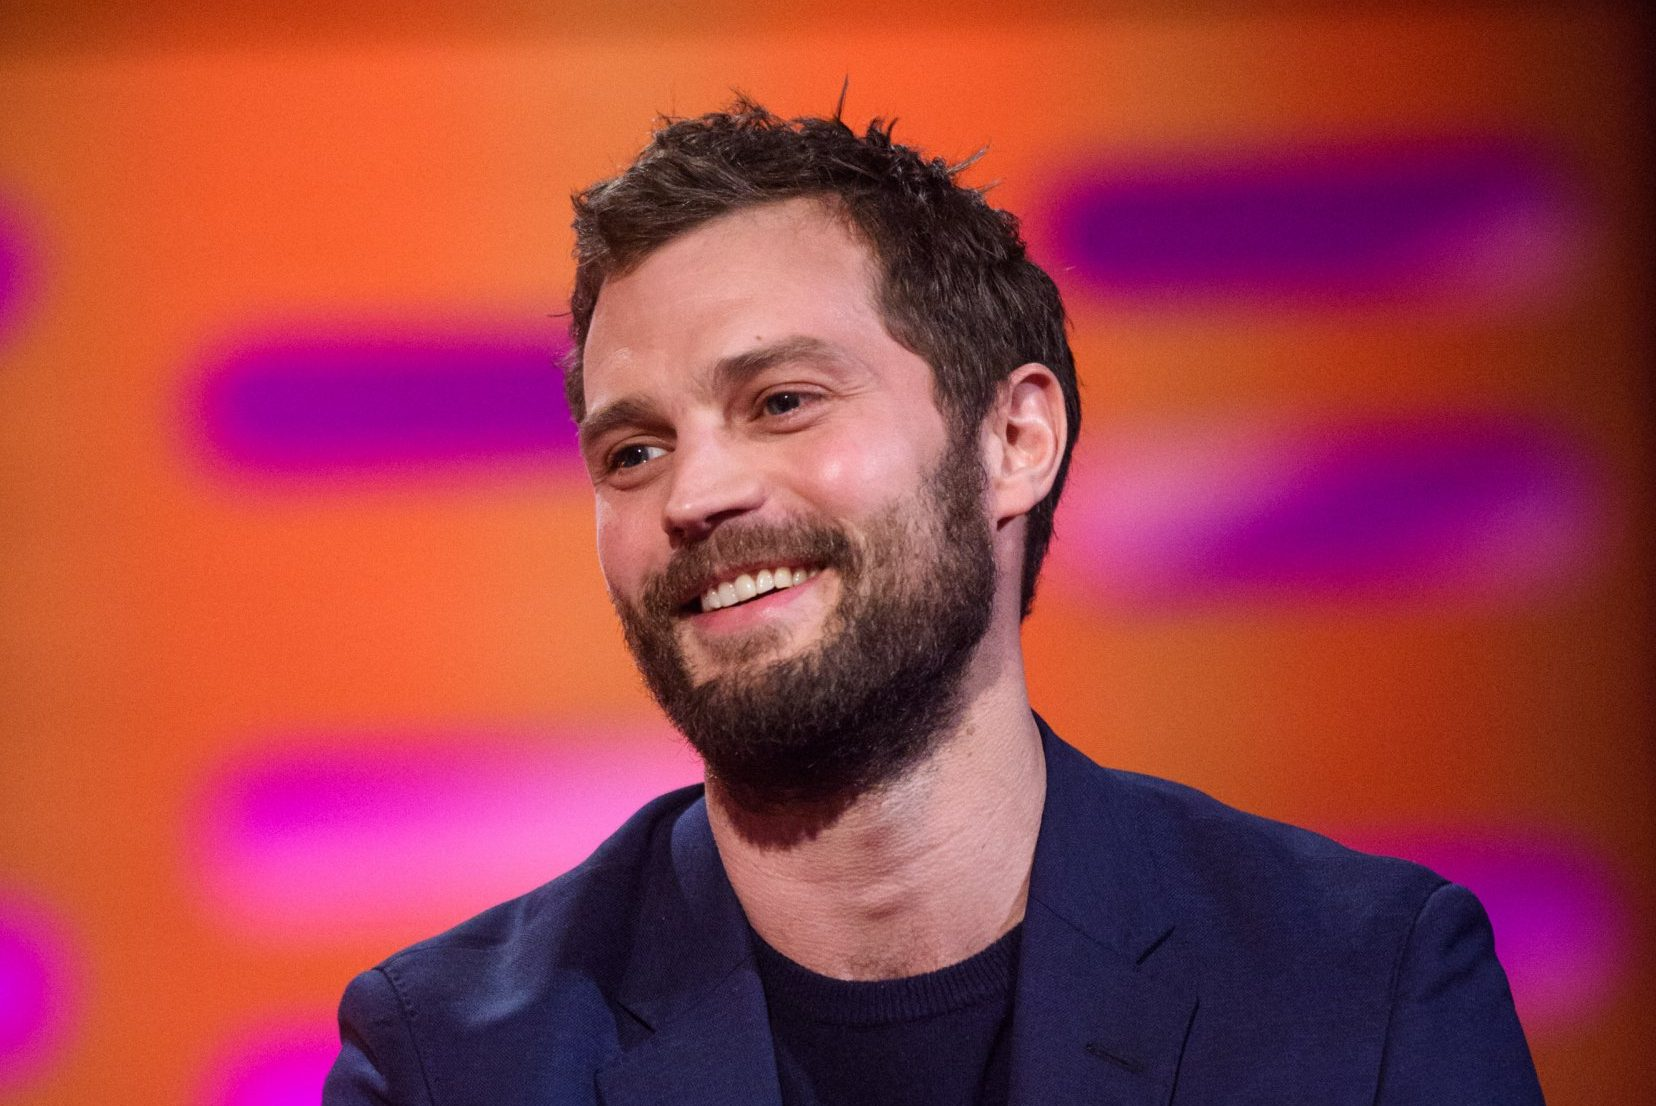 Jamie Dornan once glued a wig to his penis 'in case he got lucky' as a teenager